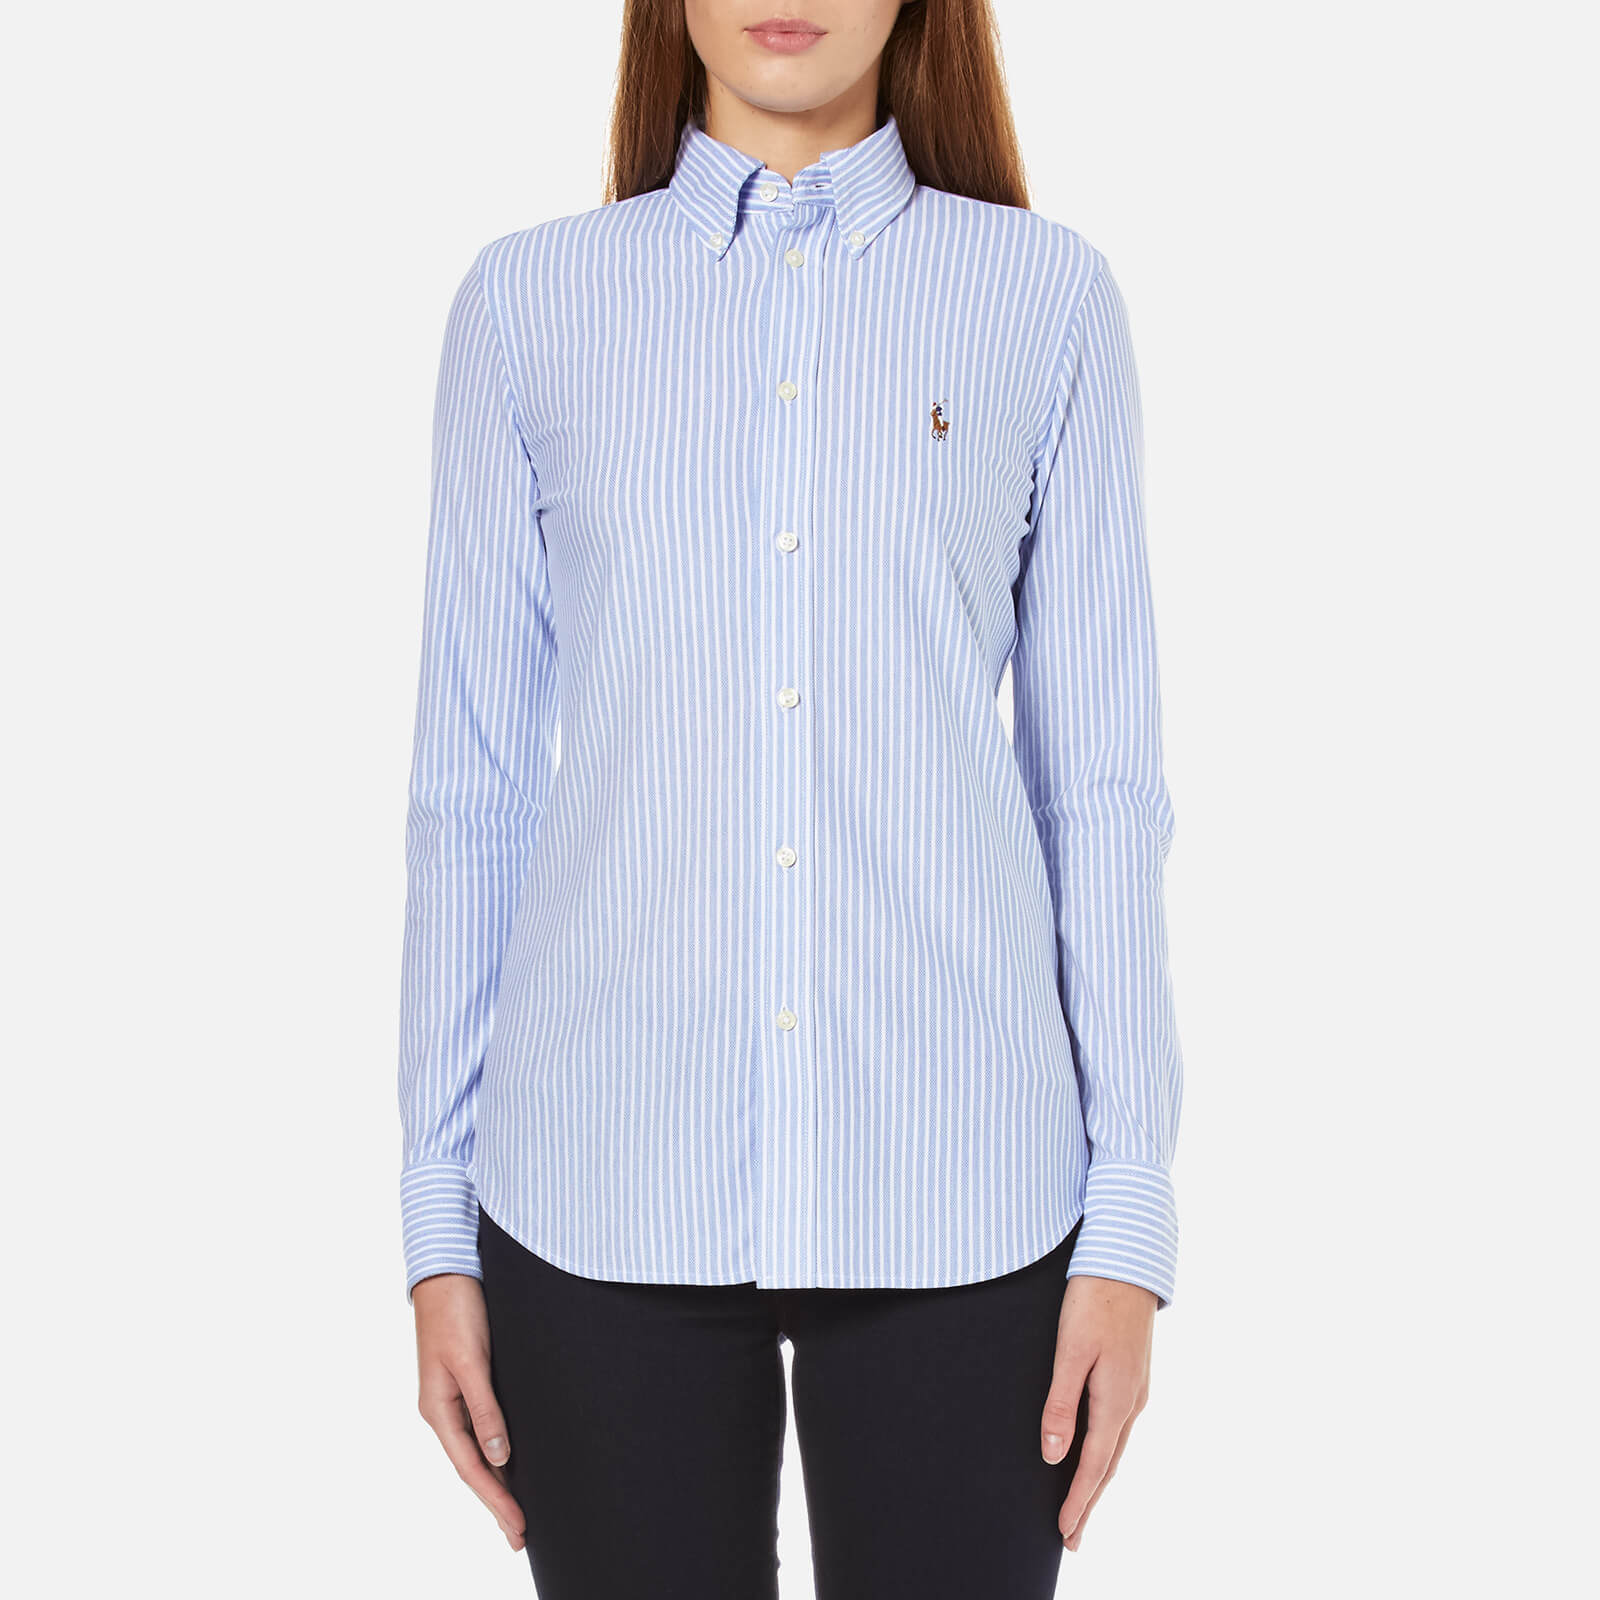 10a89426bb Polo Ralph Lauren Women's Heidi Stripe Shirt - Bermuda Blue/White - Free UK  Delivery over £50